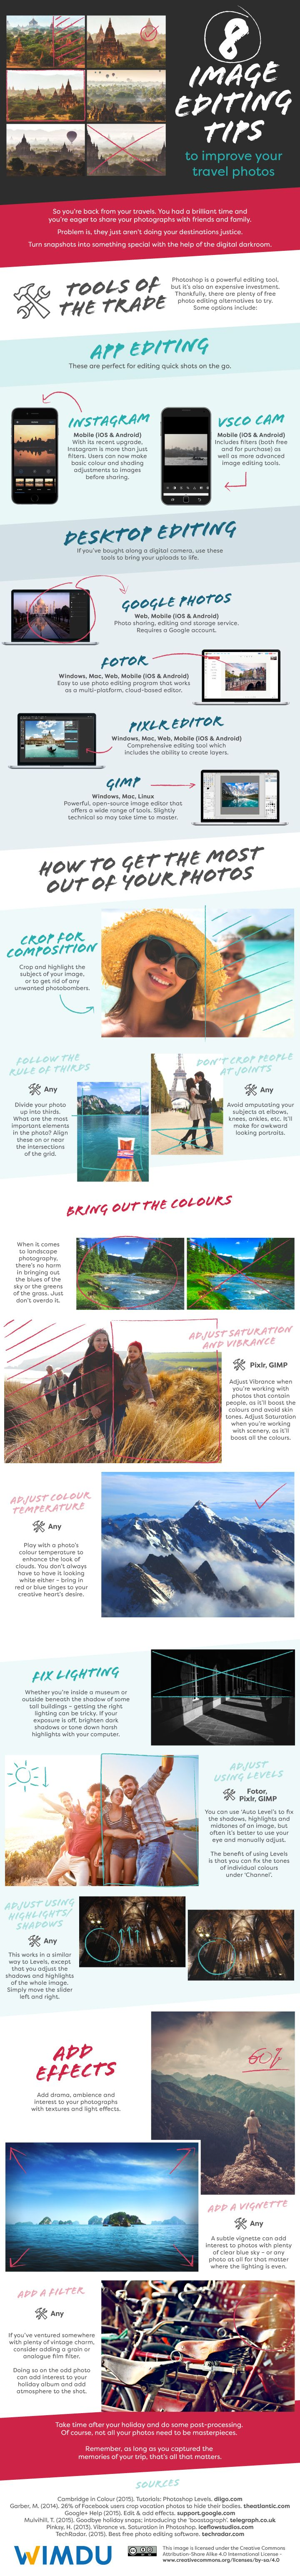 8 Image Editing Tips to Improve your Travel Photos #infographic